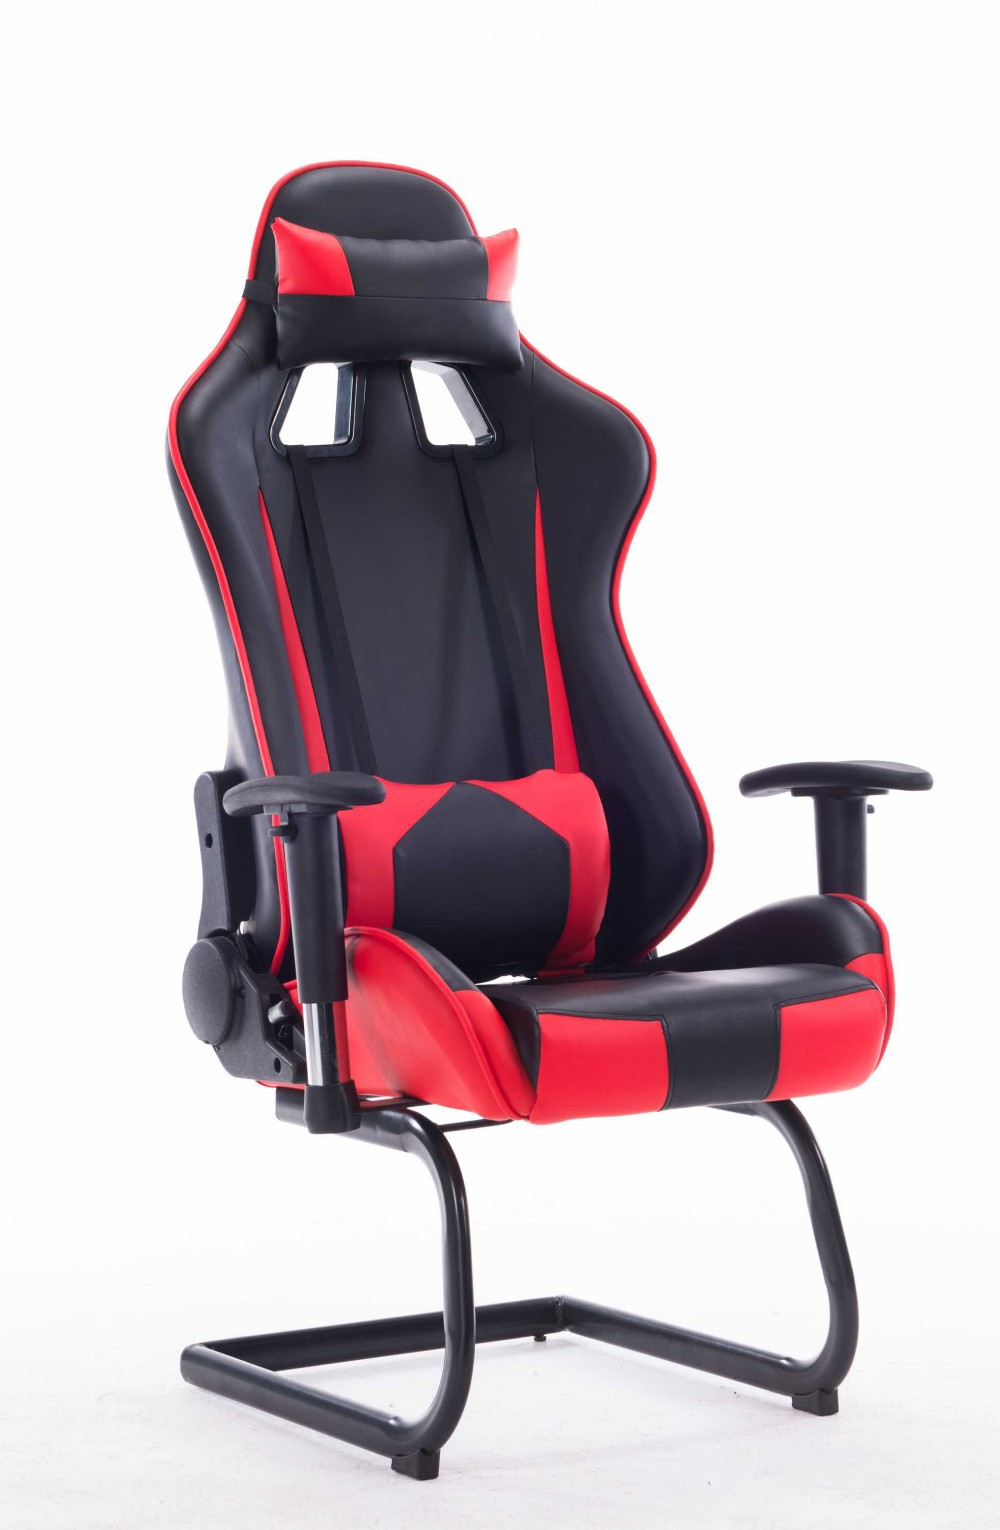 Workwell Racing Office Car Chair Gaming Chair Bucket Seat Iron Structure  Multifunction Bucket Seat Chair QO